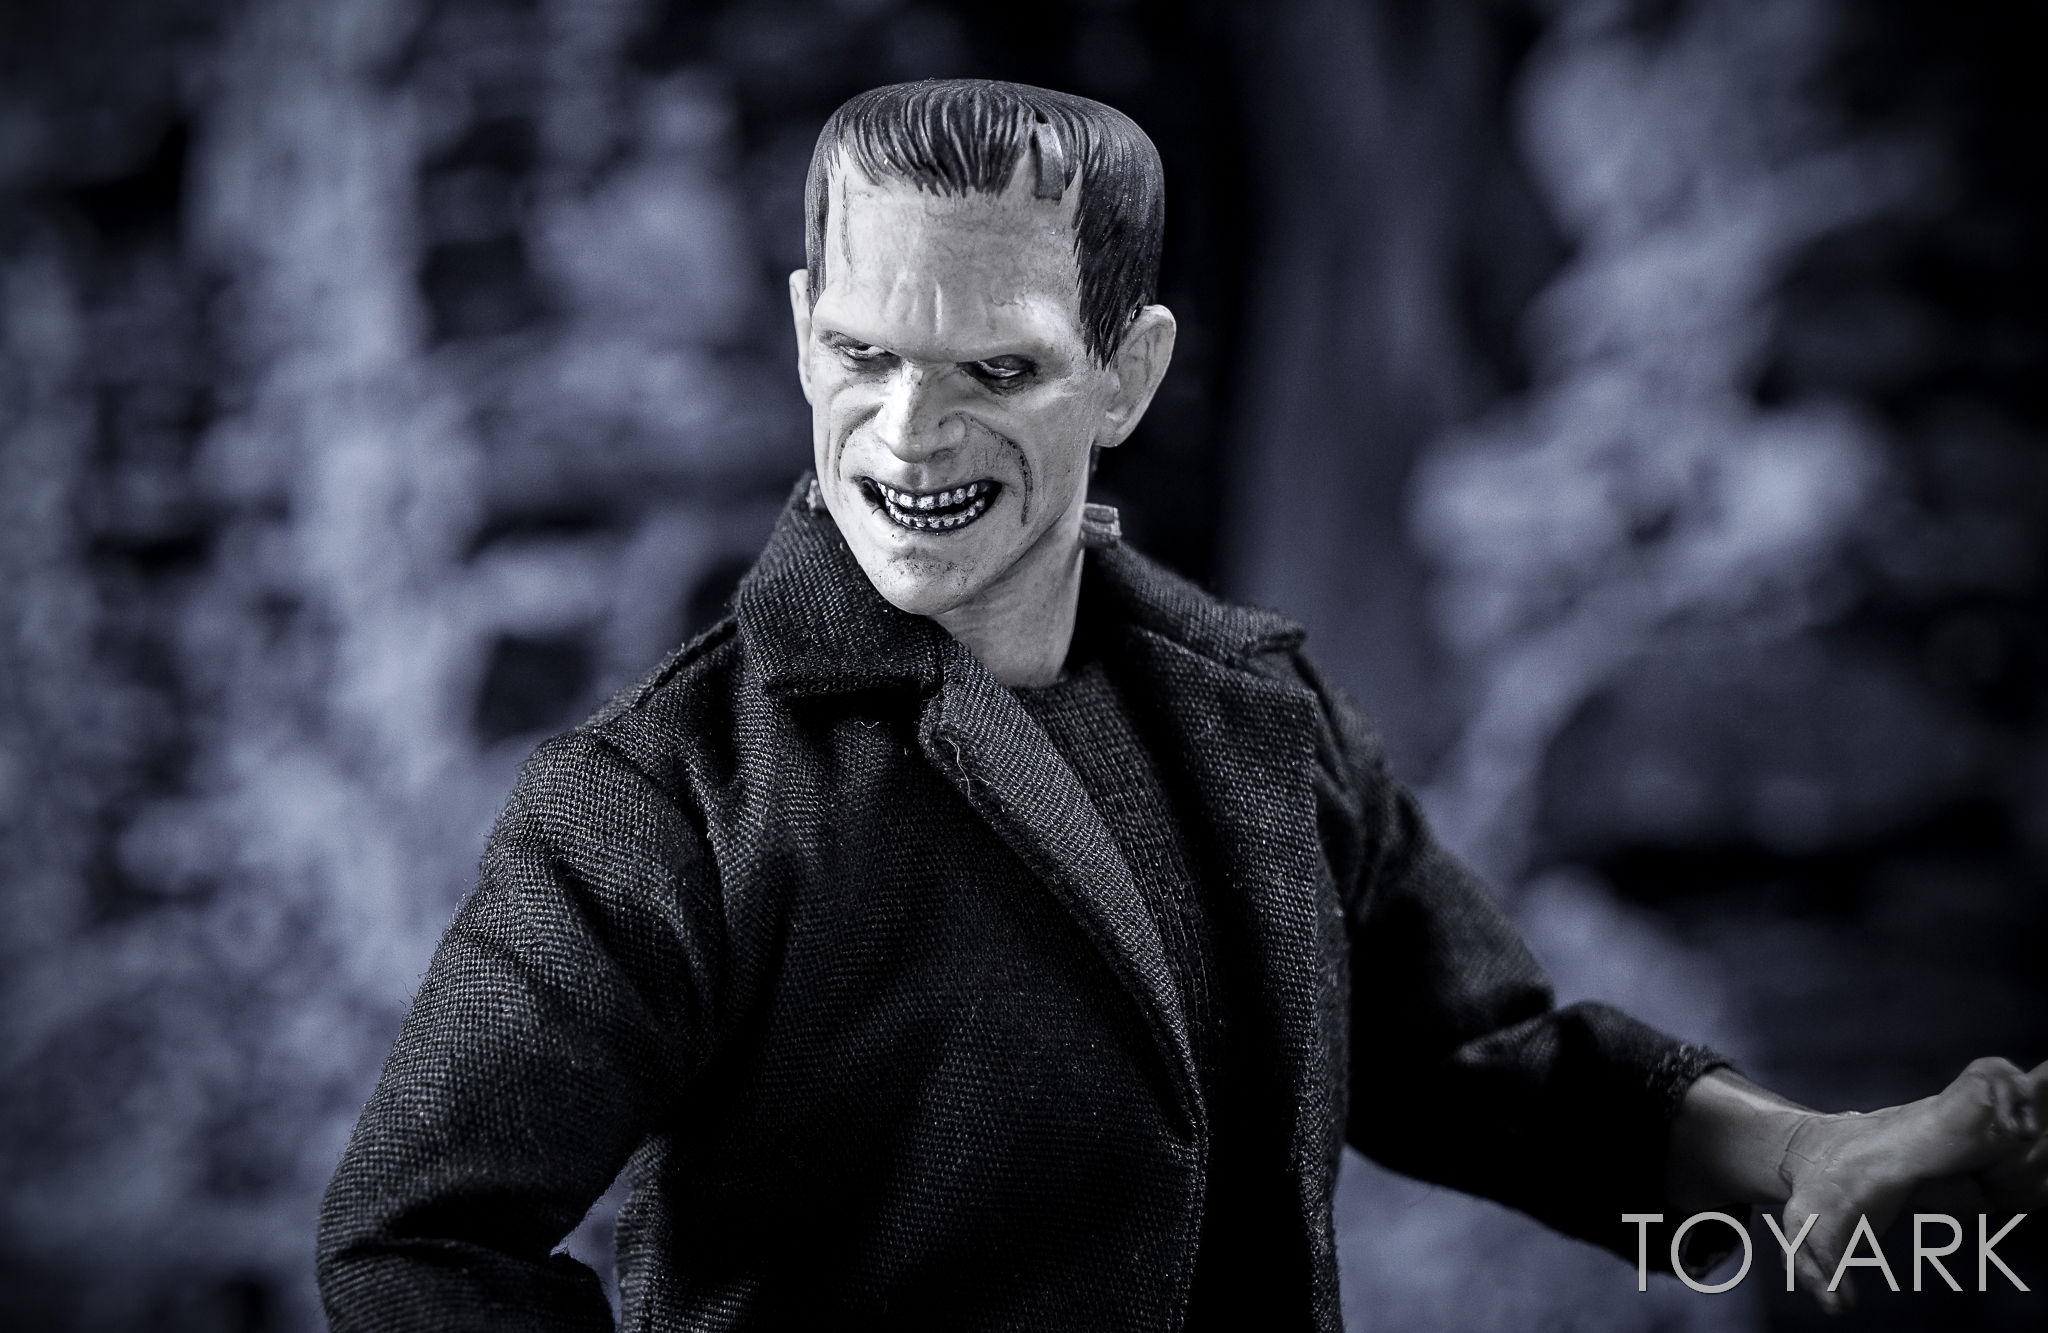 http://news.toyark.com/wp-content/uploads/sites/4/2016/12/Mezco-One12-Collective-Frankenstein-Figure-033.jpg